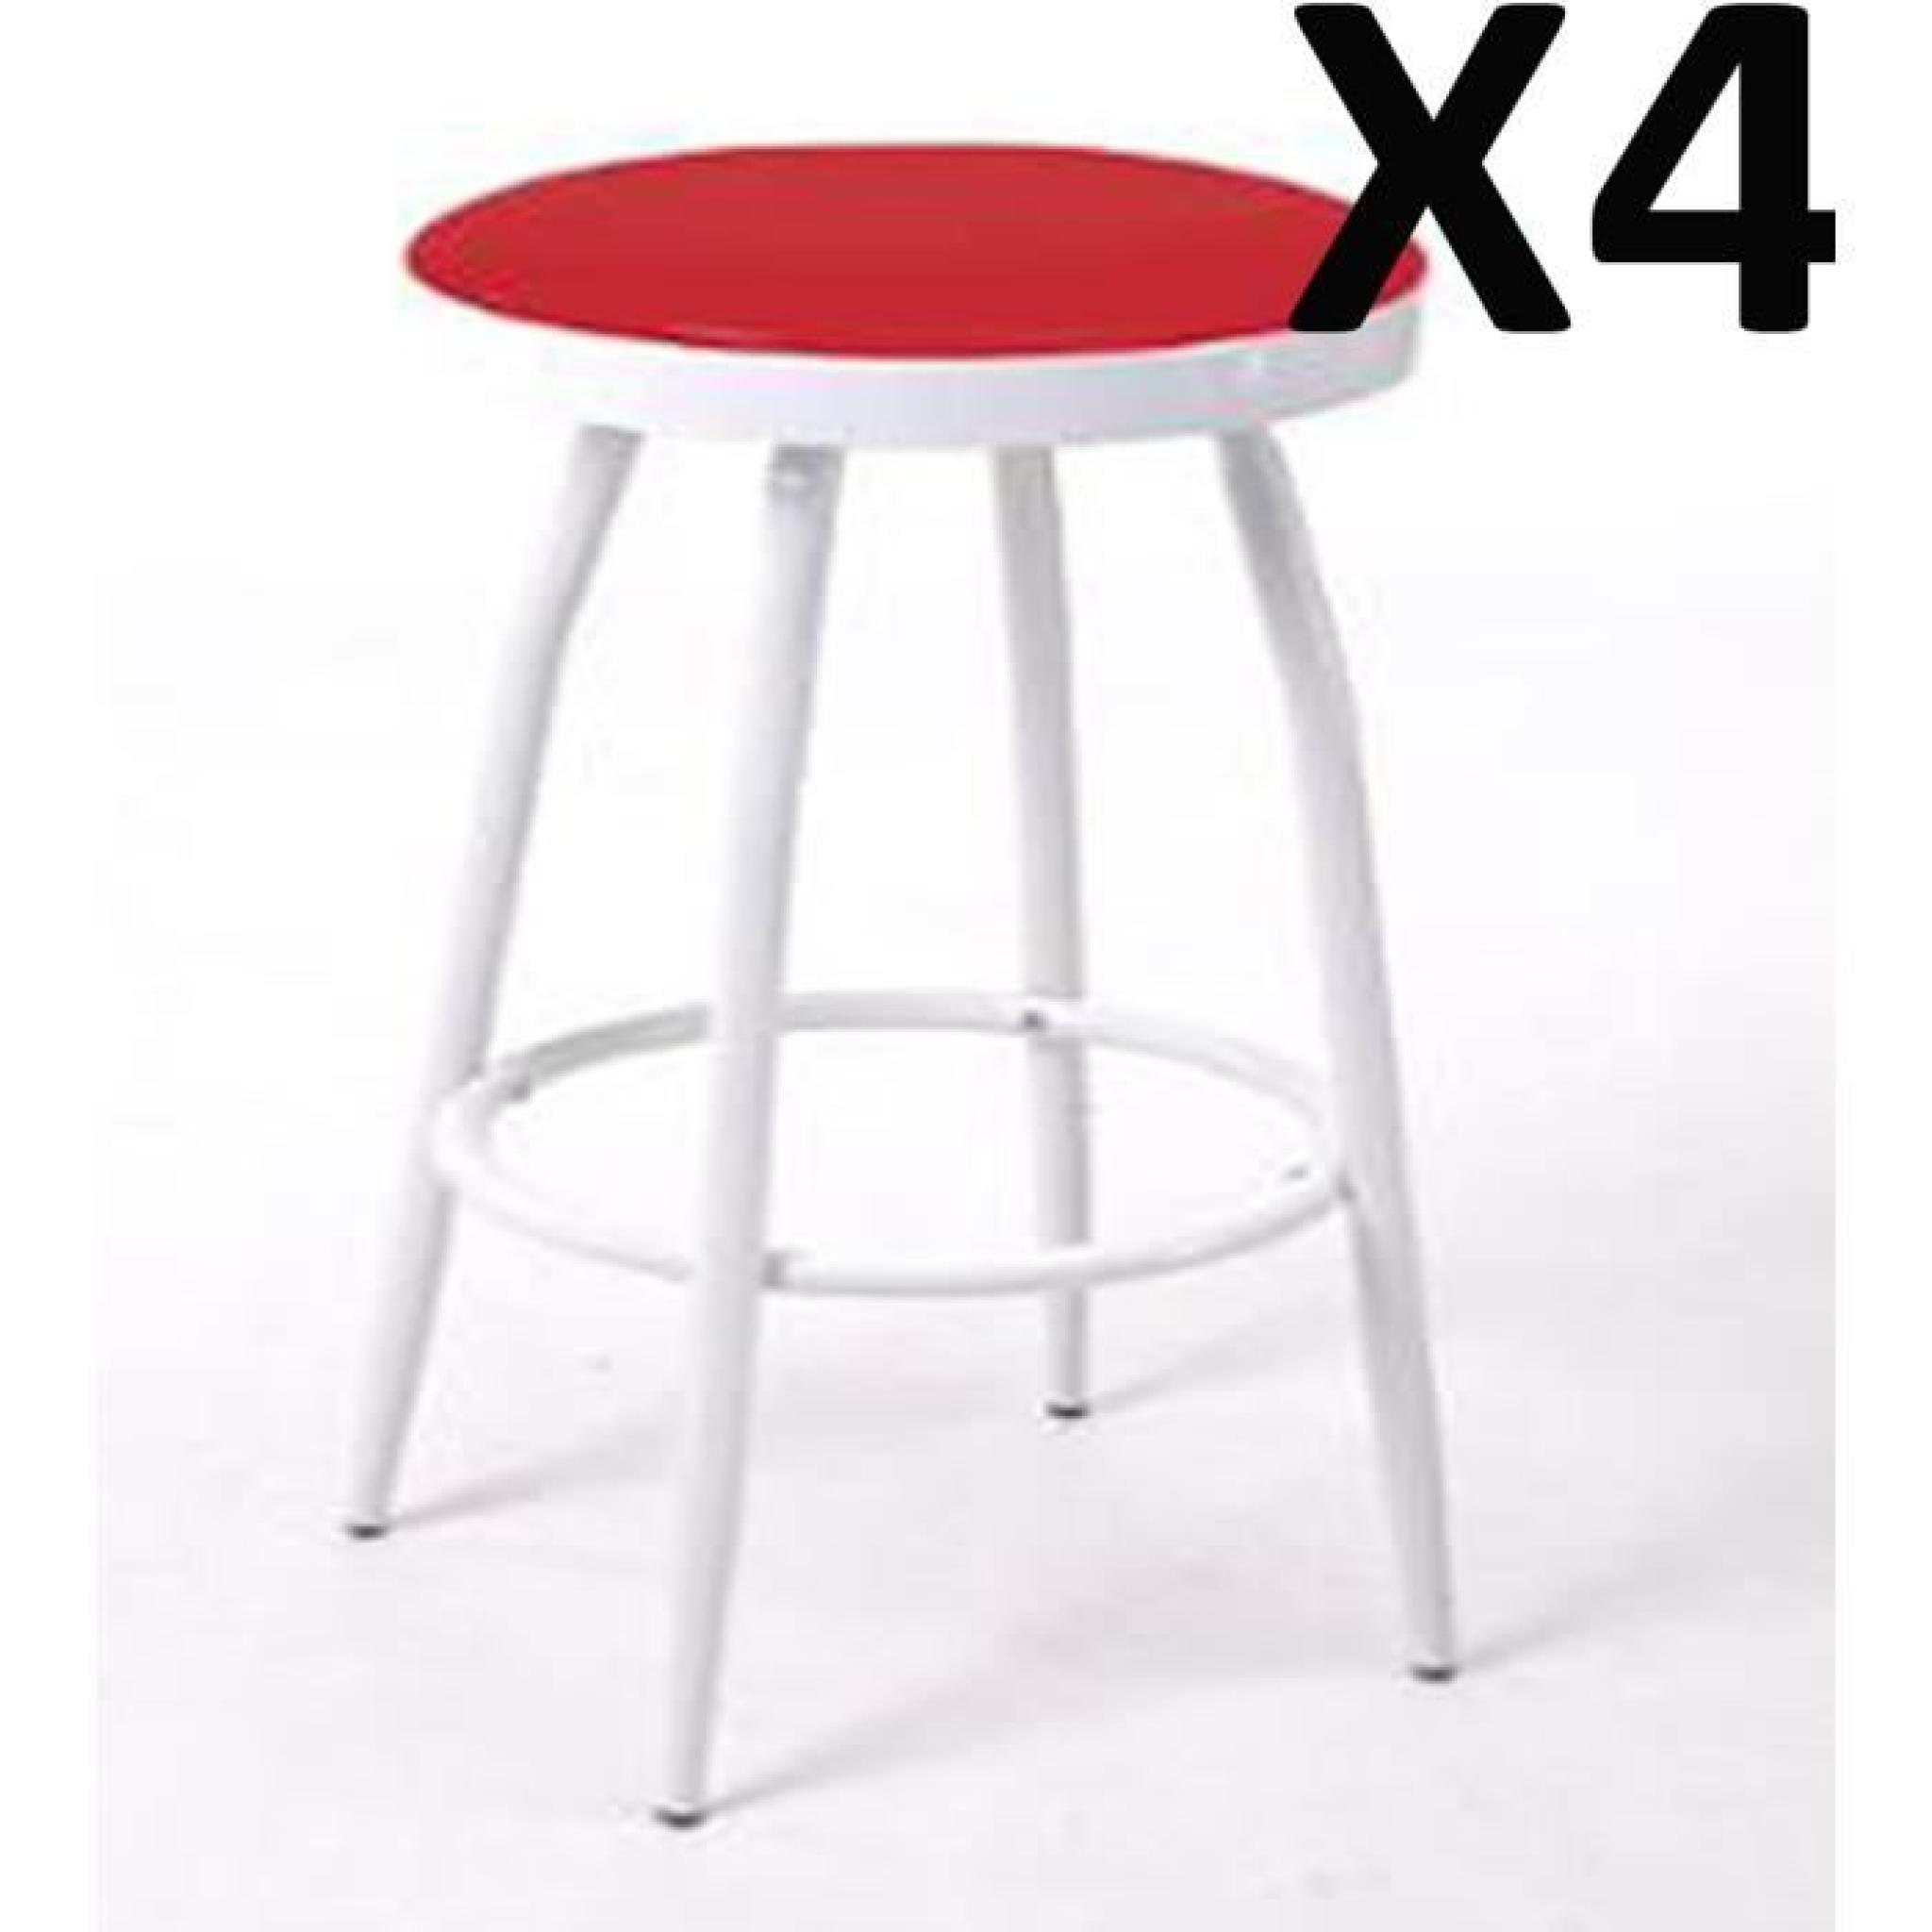 Lot de 4 tabourets de bar rouge h 78 x d 36 cm achat vente tabouret de bar - Lot 4 tabouret de bar ...